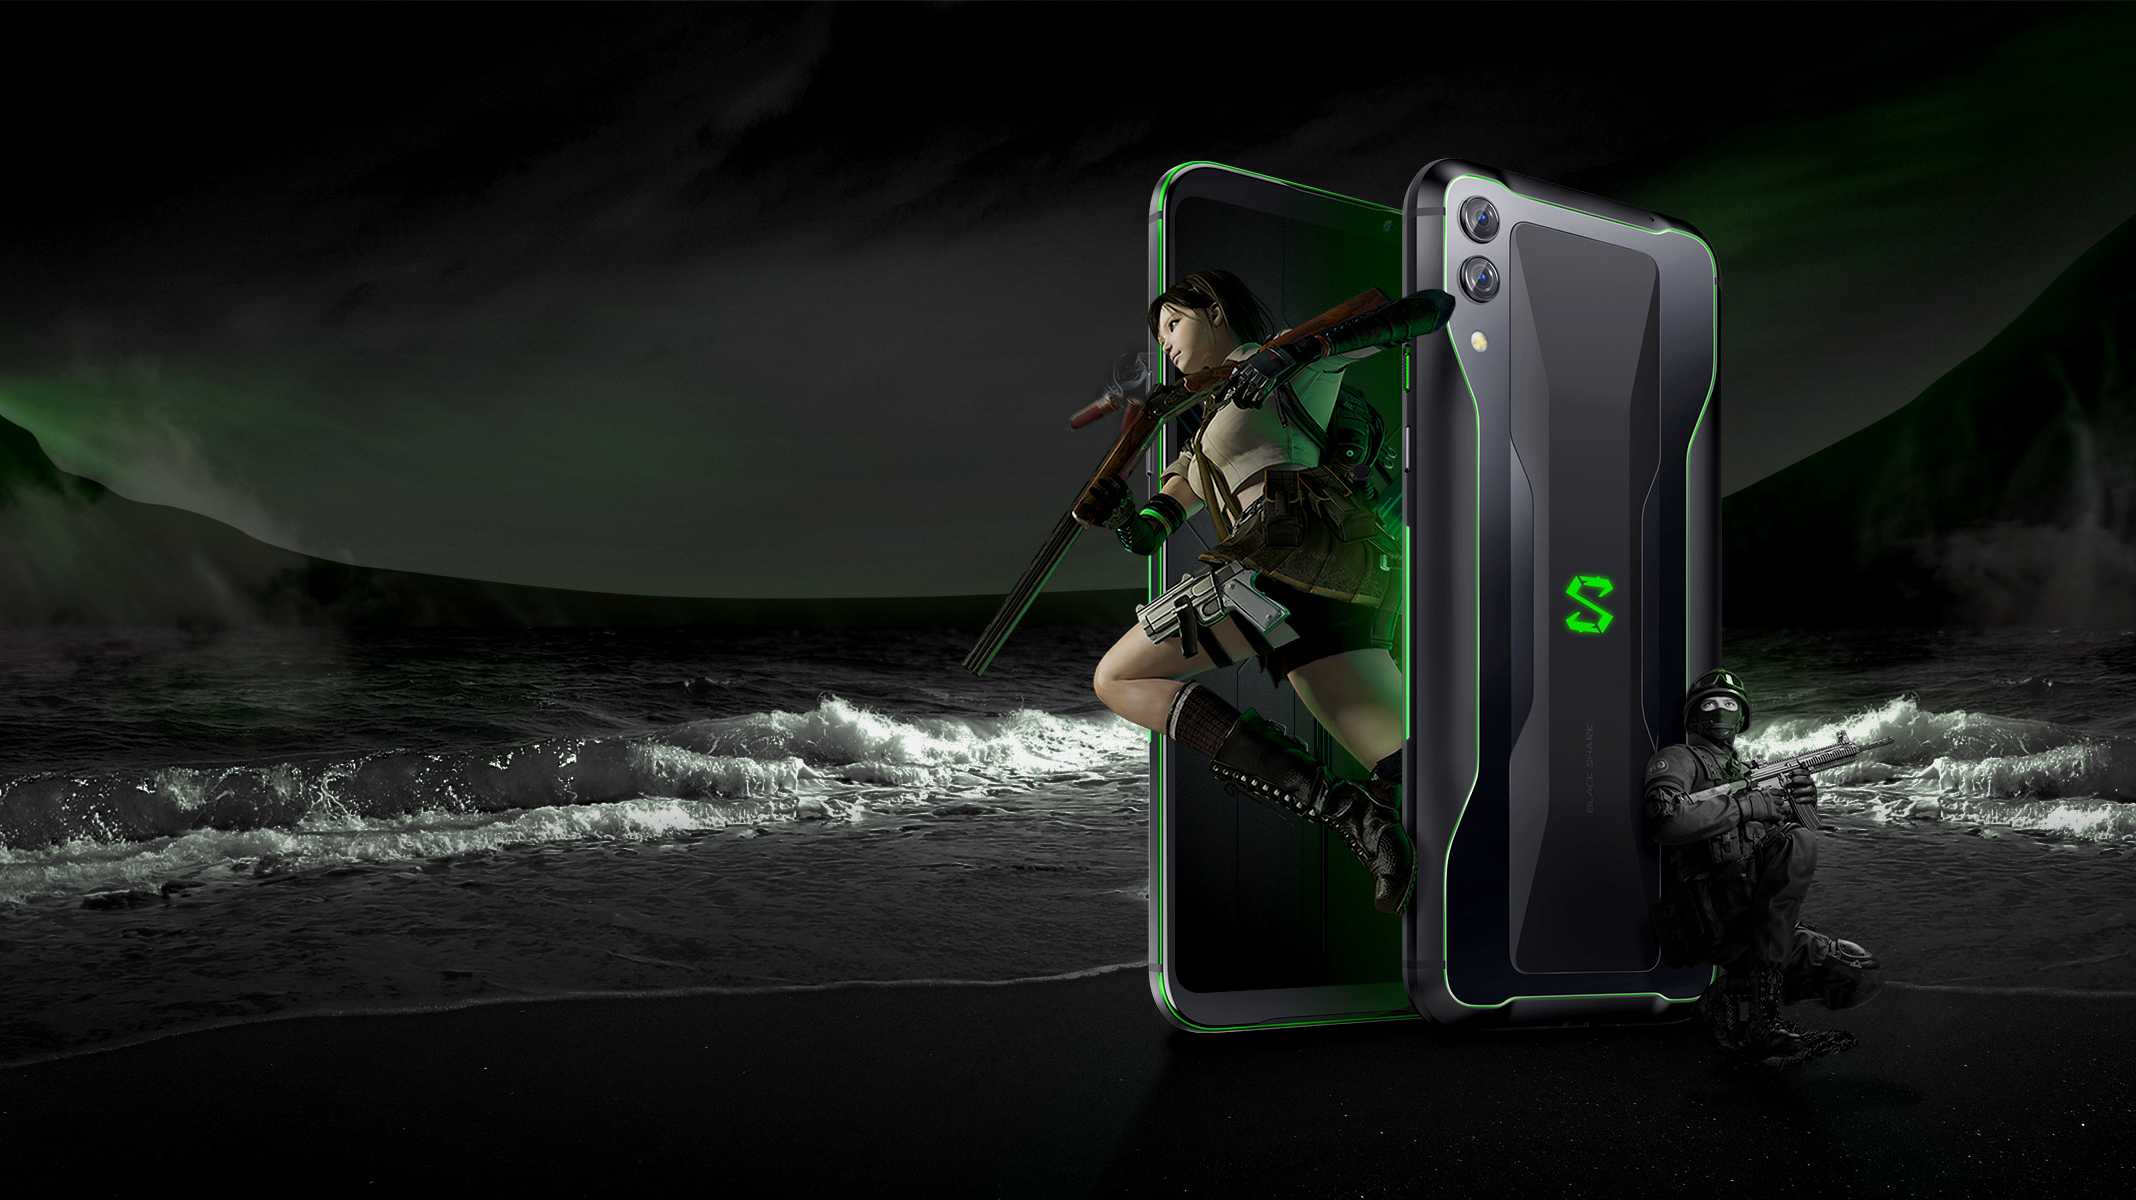 Xiaomi Black Shark 2: Gaming-Smartphone mit 12 Gbyte RAM und Magic Press vorgestellt